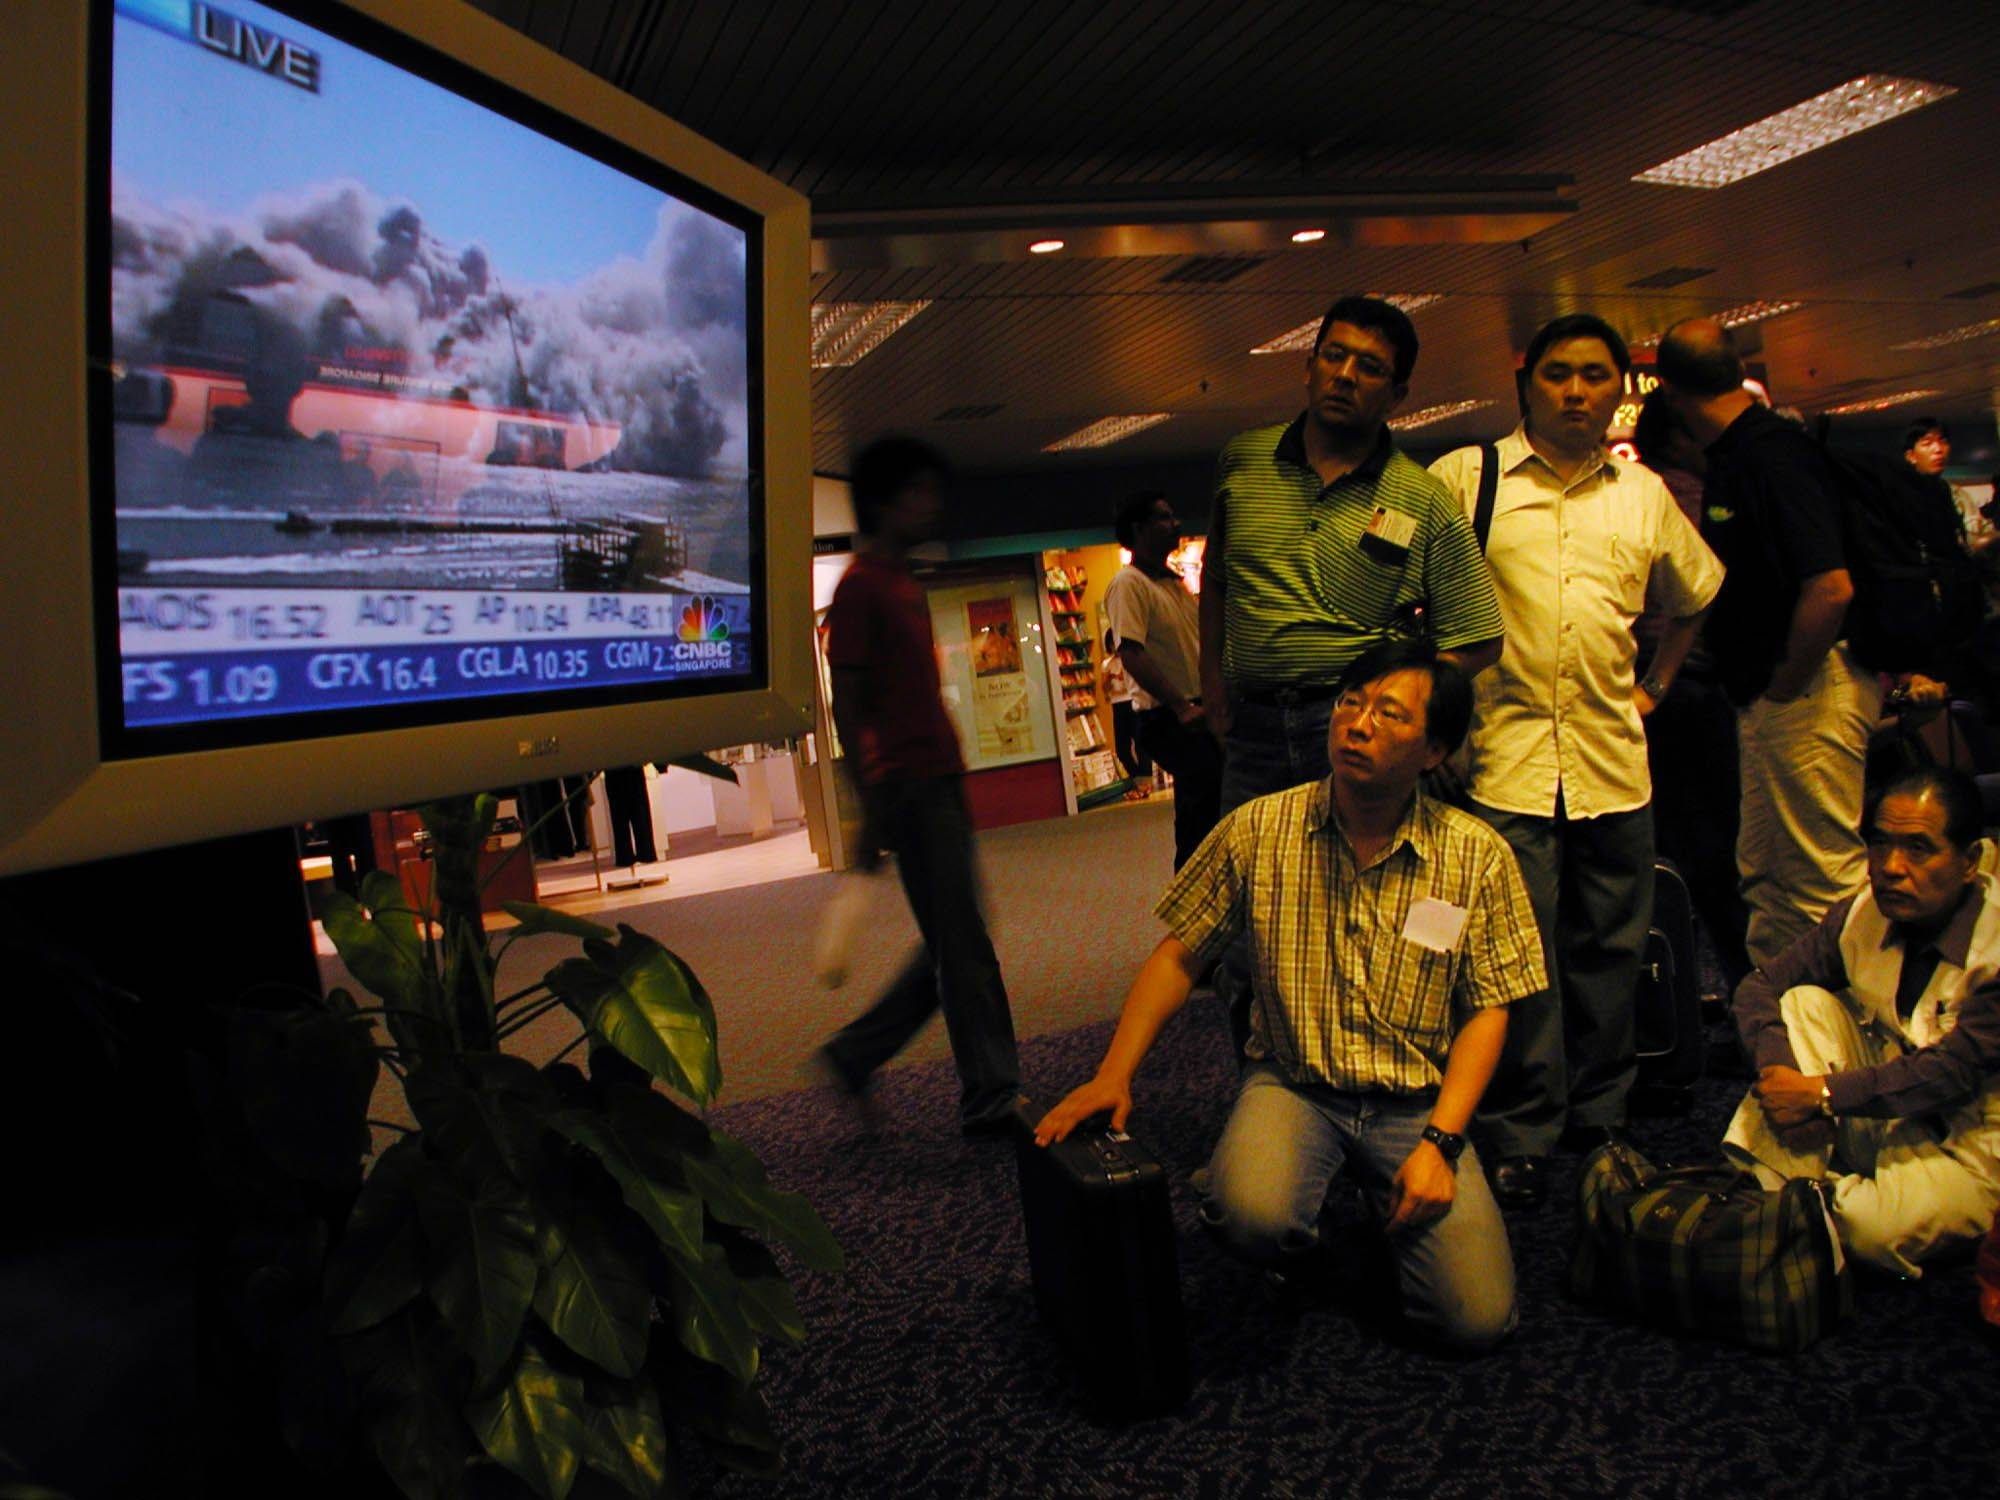 Travelers at Singapore's Changi International Airport stop to watch live pictures of smoke billowing over lower Manhattan after the terrorist attacks on the World Trade Center.